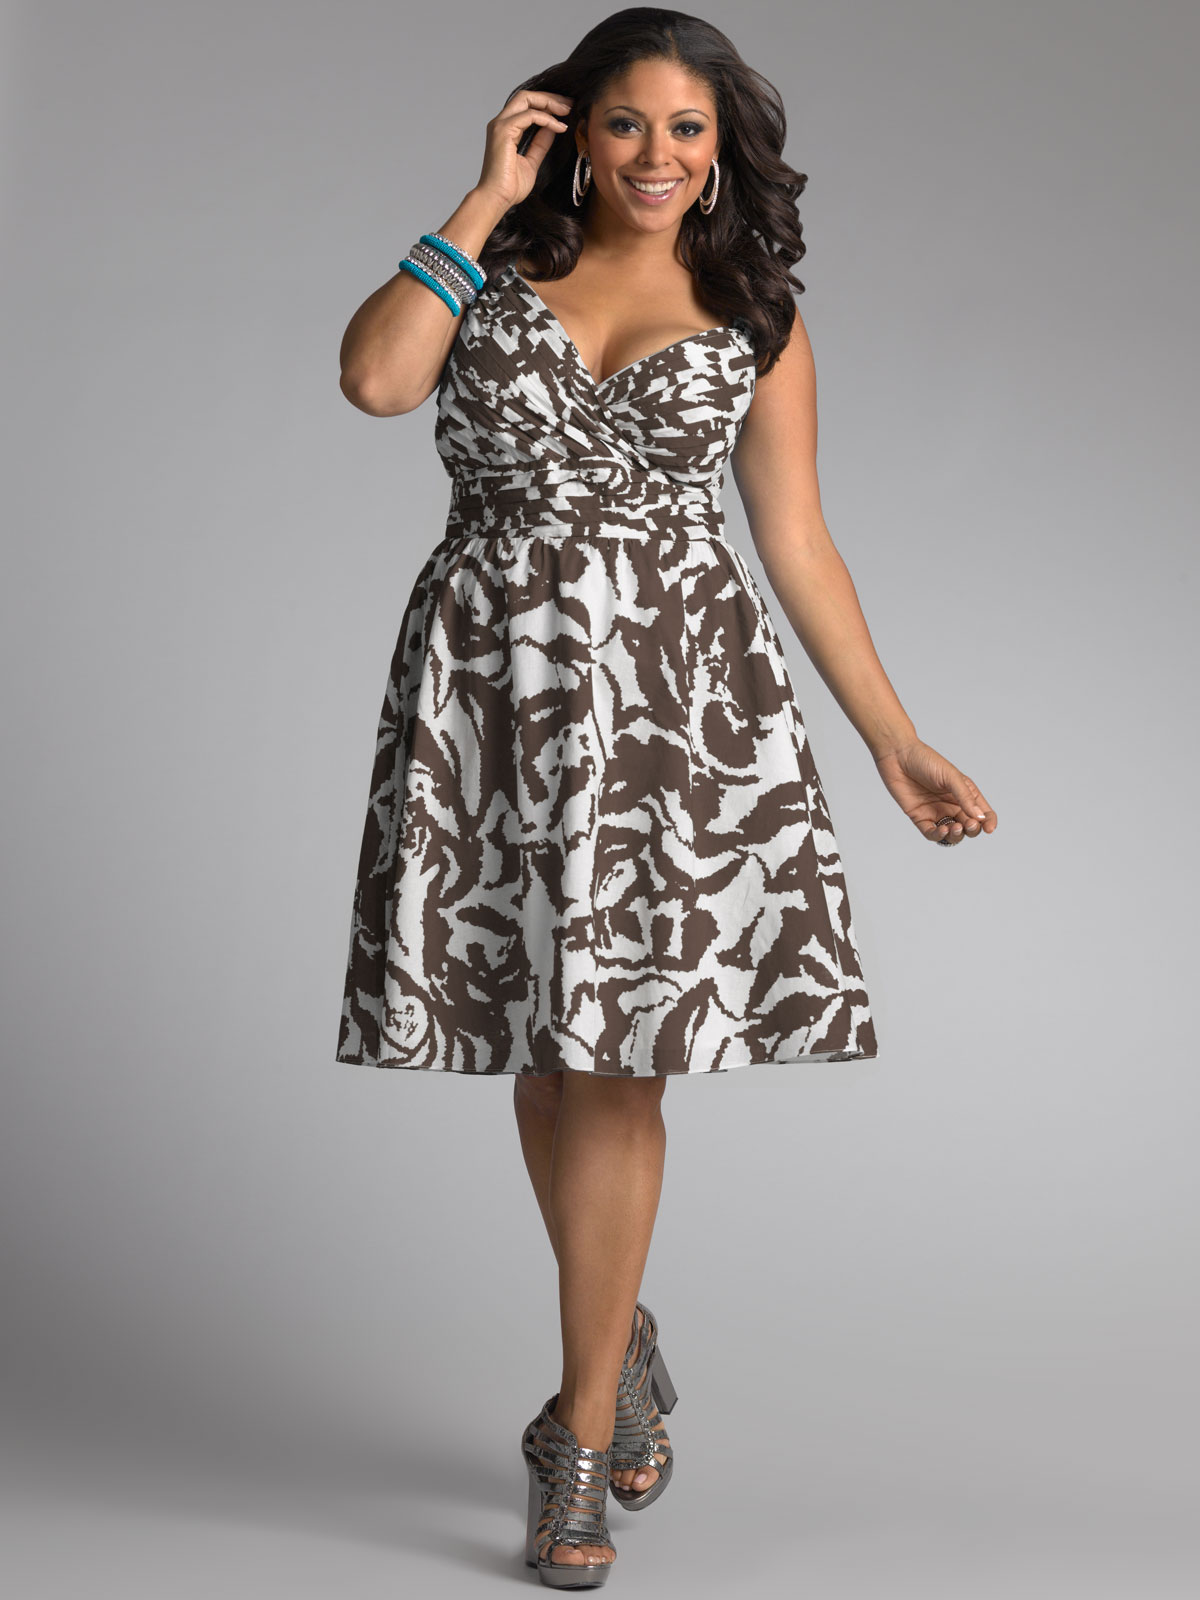 Find stylish plus size clothing that you are sure to love from dressbarn. Shop for gorgeous dresses, jeans, pants and much more in your size today! Skip to content Click to open item in quickview mode Click to add item to the favorite list.